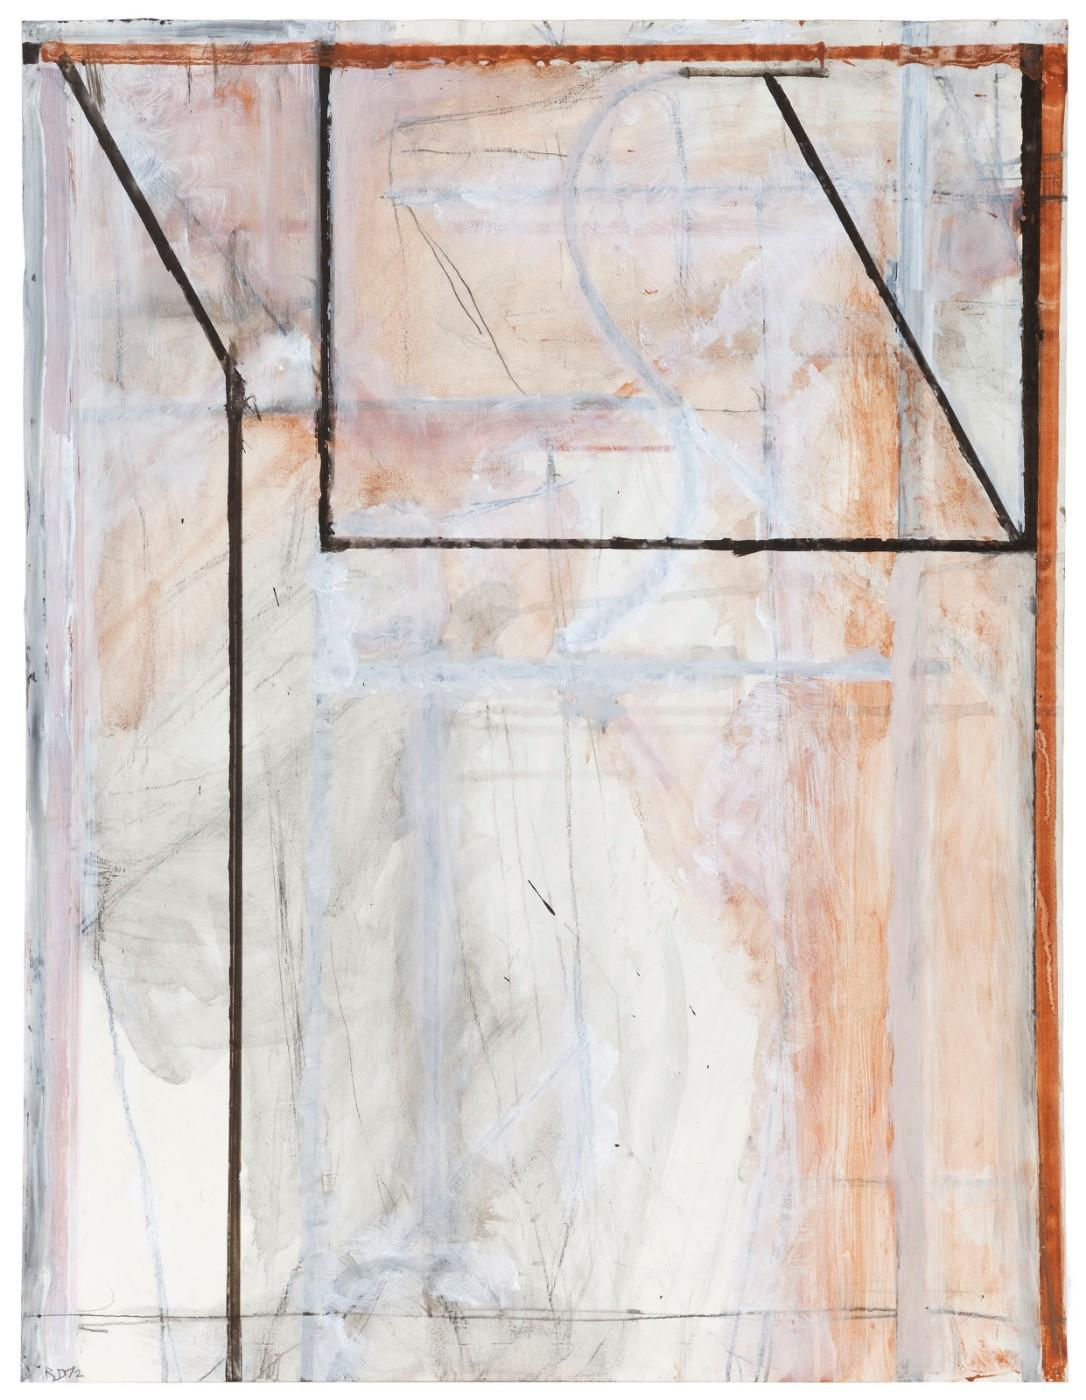 Richard Diebenkorn (1922-1993), Untitled, 1972